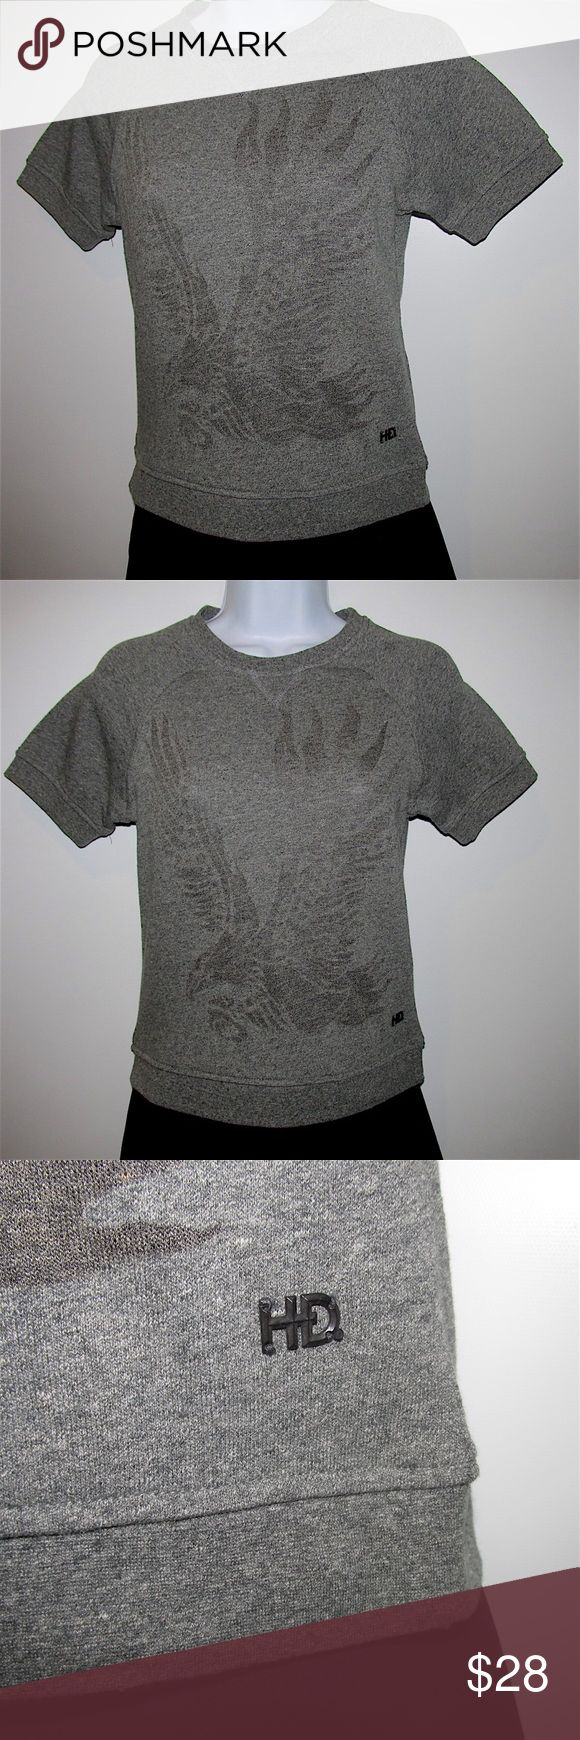 """Harley Davidson Motorcycle XSmall Crop Top NWT Great Harley Davidson Motorcycle gray logo t-shirt top, ladies size XSmall. •Banded scoop neckline •Raglan banded sleeves •Wings-up logo •""""HD"""" logo •Banded hemline Measurements •Length shoulder to hem: 20.5"""" •Width across front at underarm: 16"""" •Sleeve length: 6"""" Fabric content: 57% cotton/43% polyester Garment care: Machine wash cold, tumble dry low Harley-Davidson Tops Crop Tops"""